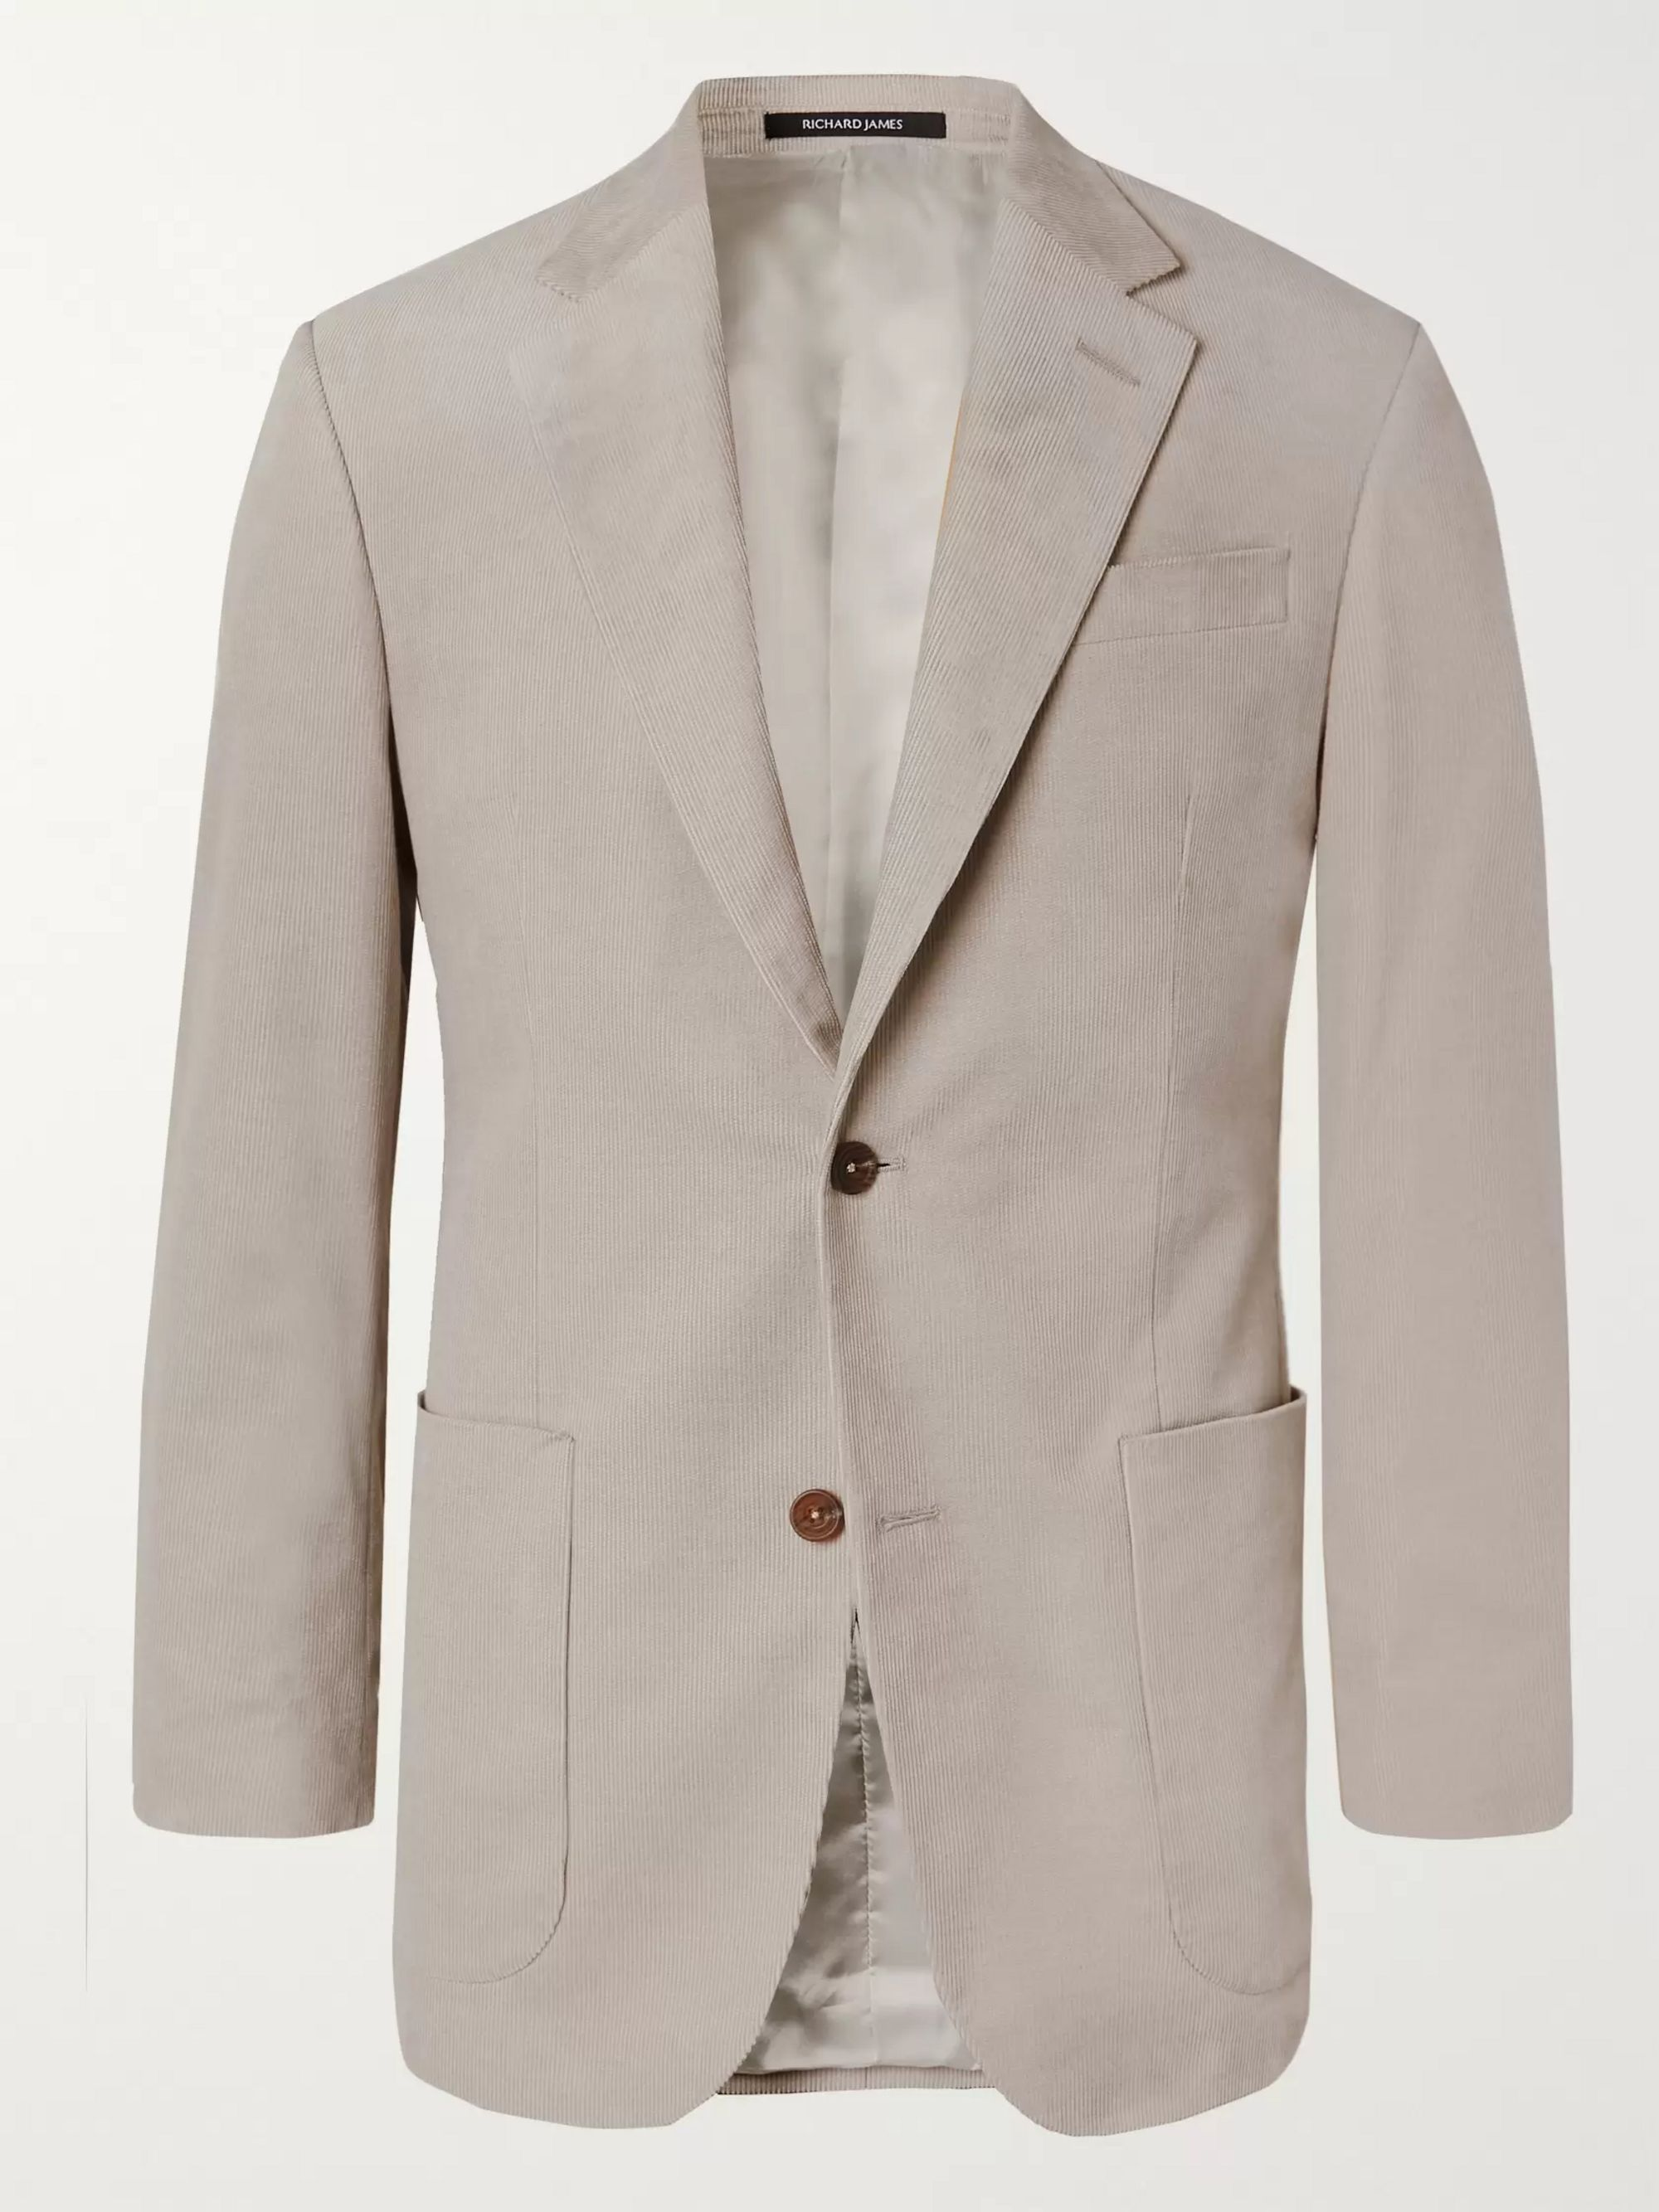 Richard James Stone Slim-Fit Cotton-Corduroy Suit Jacket